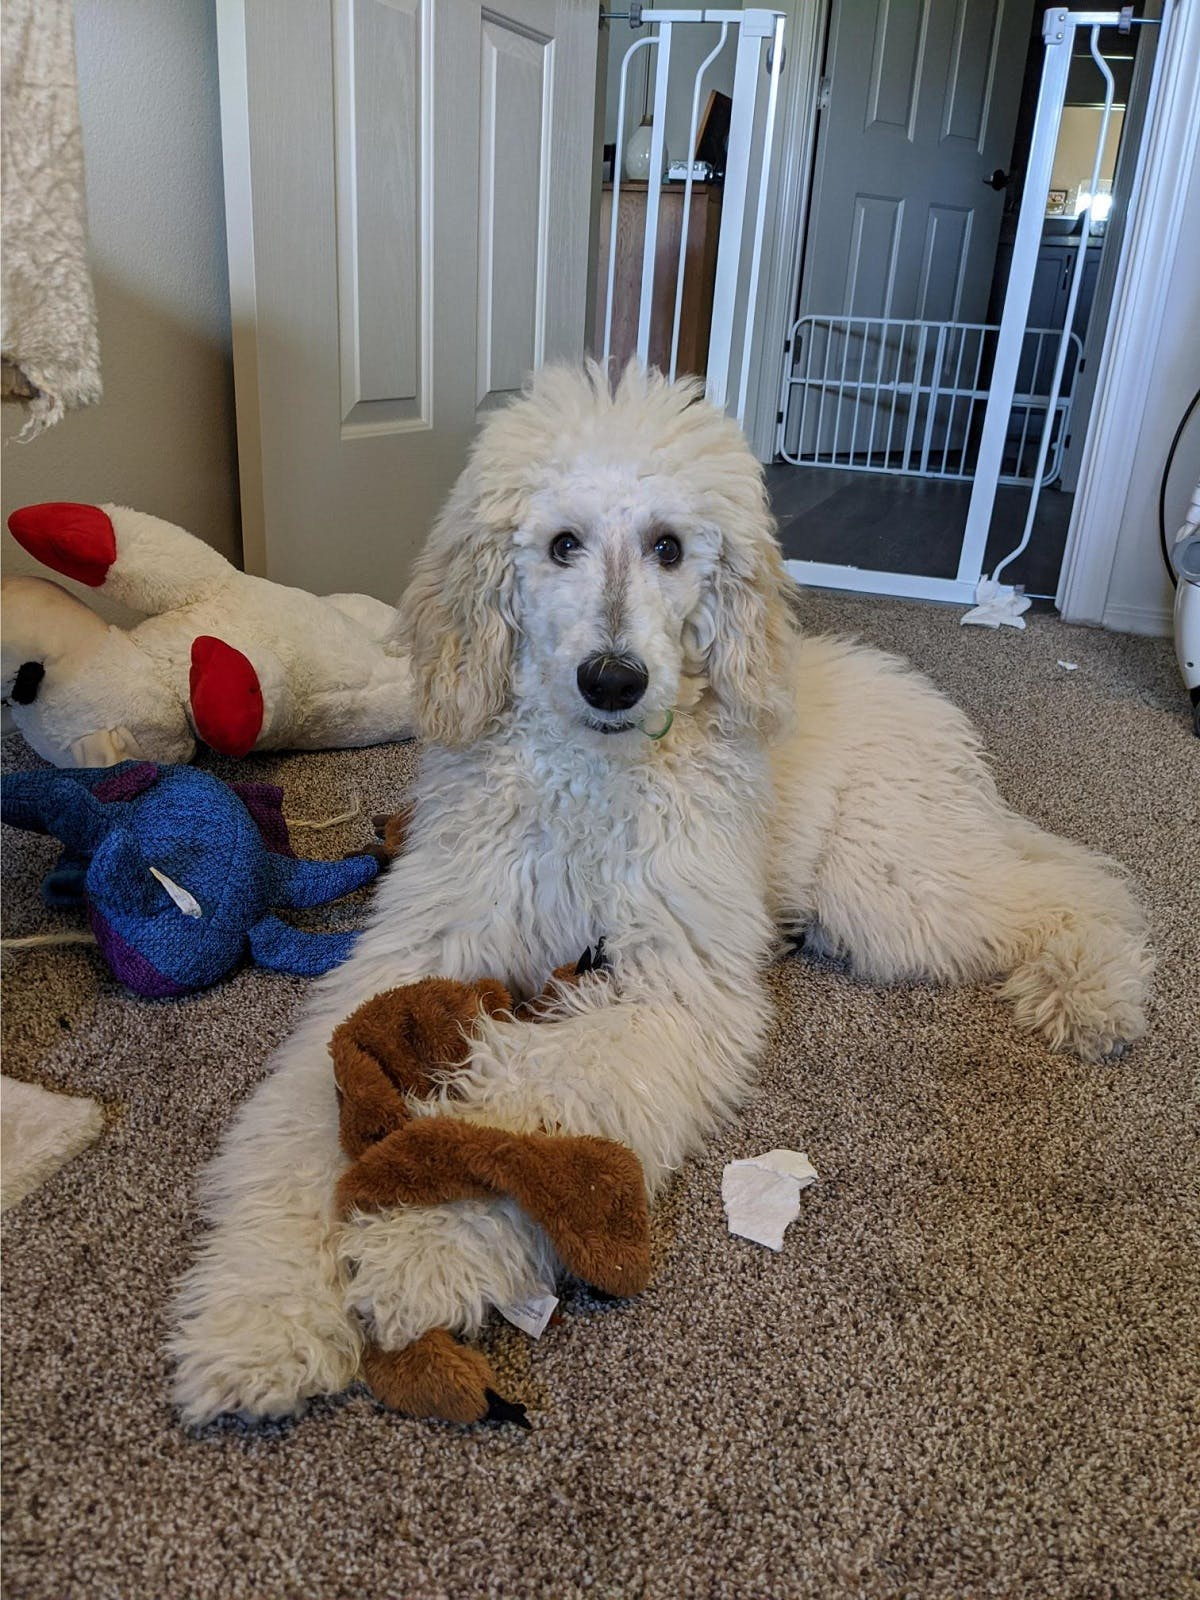 Cece the dog relaxing surrounded by toys